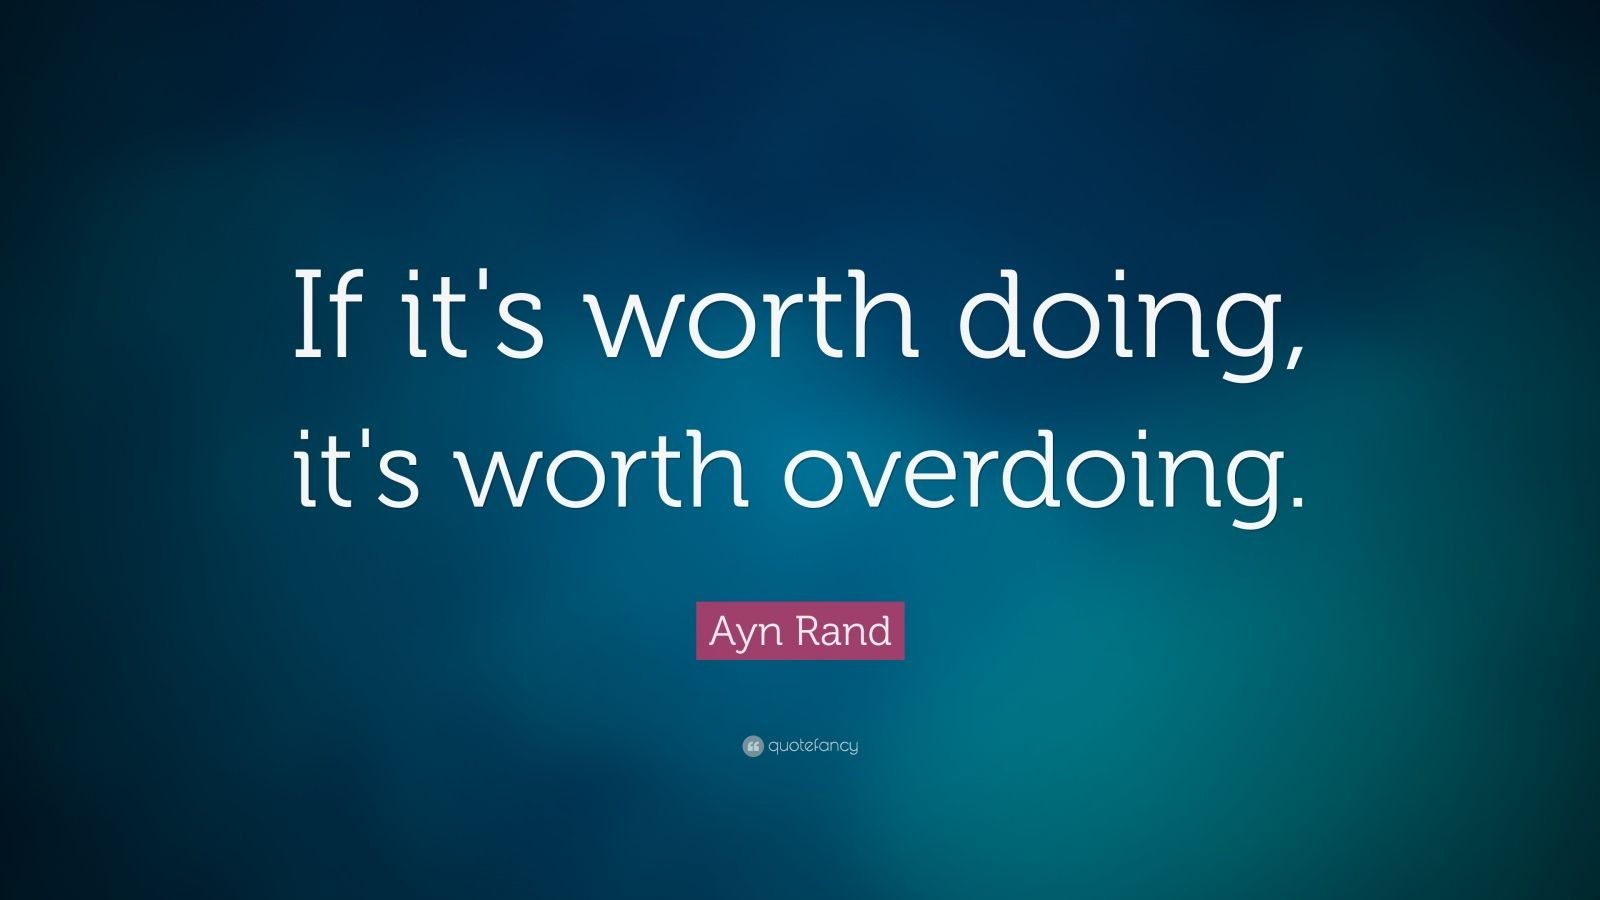 William Shakespeare Love Quotes Wallpaper Ayn Rand Quote If It S Worth Doing It S Worth Overdoing